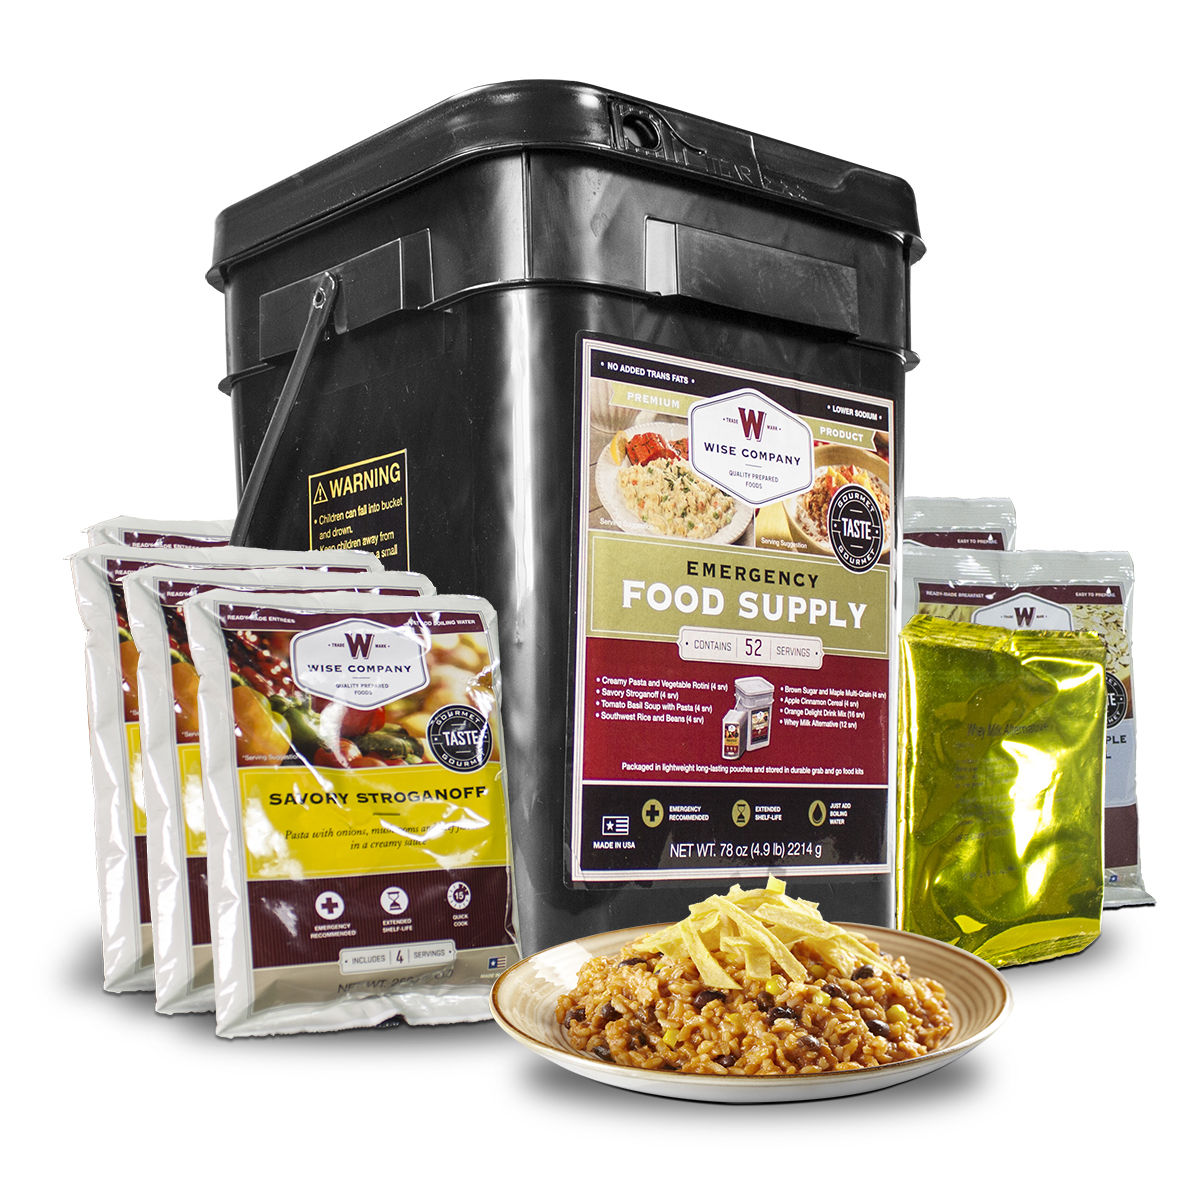 52 Servings of Wise Freeze Dried Emergency Food and Drink Storage 1